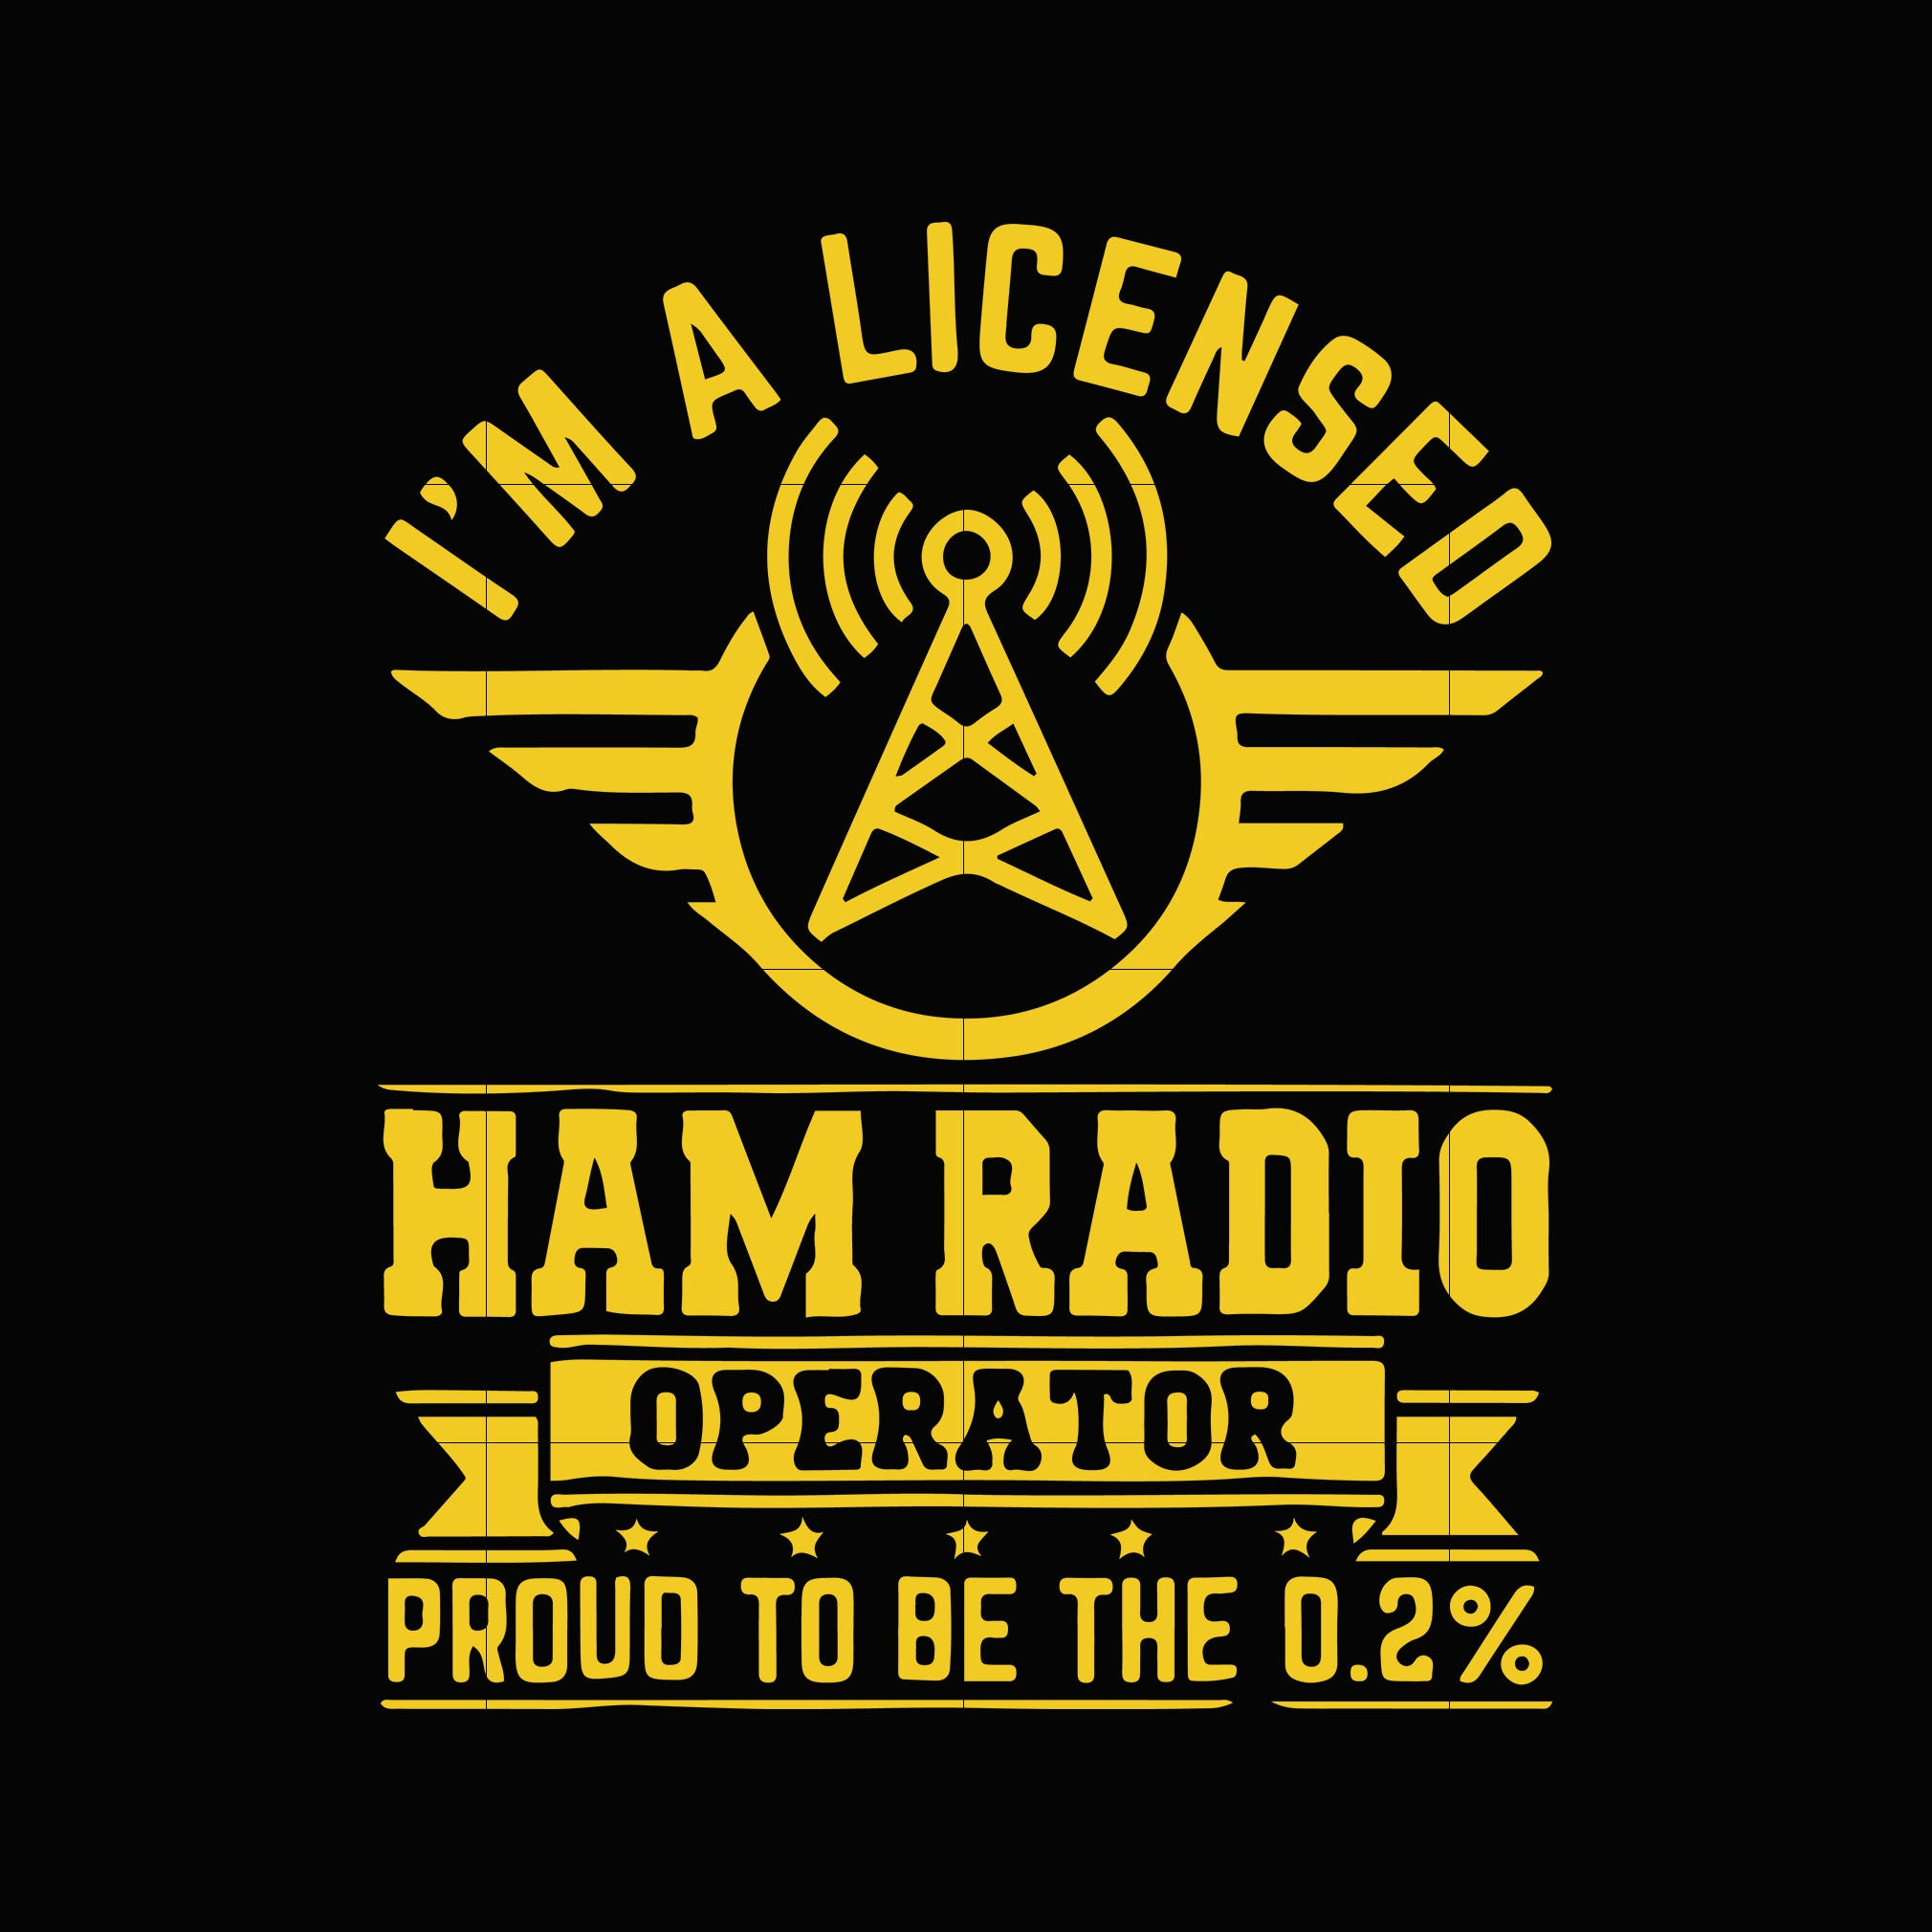 I'm a licensed ham radio operator proud to be the 0,2%  svg ,dxf,eps,png digital file